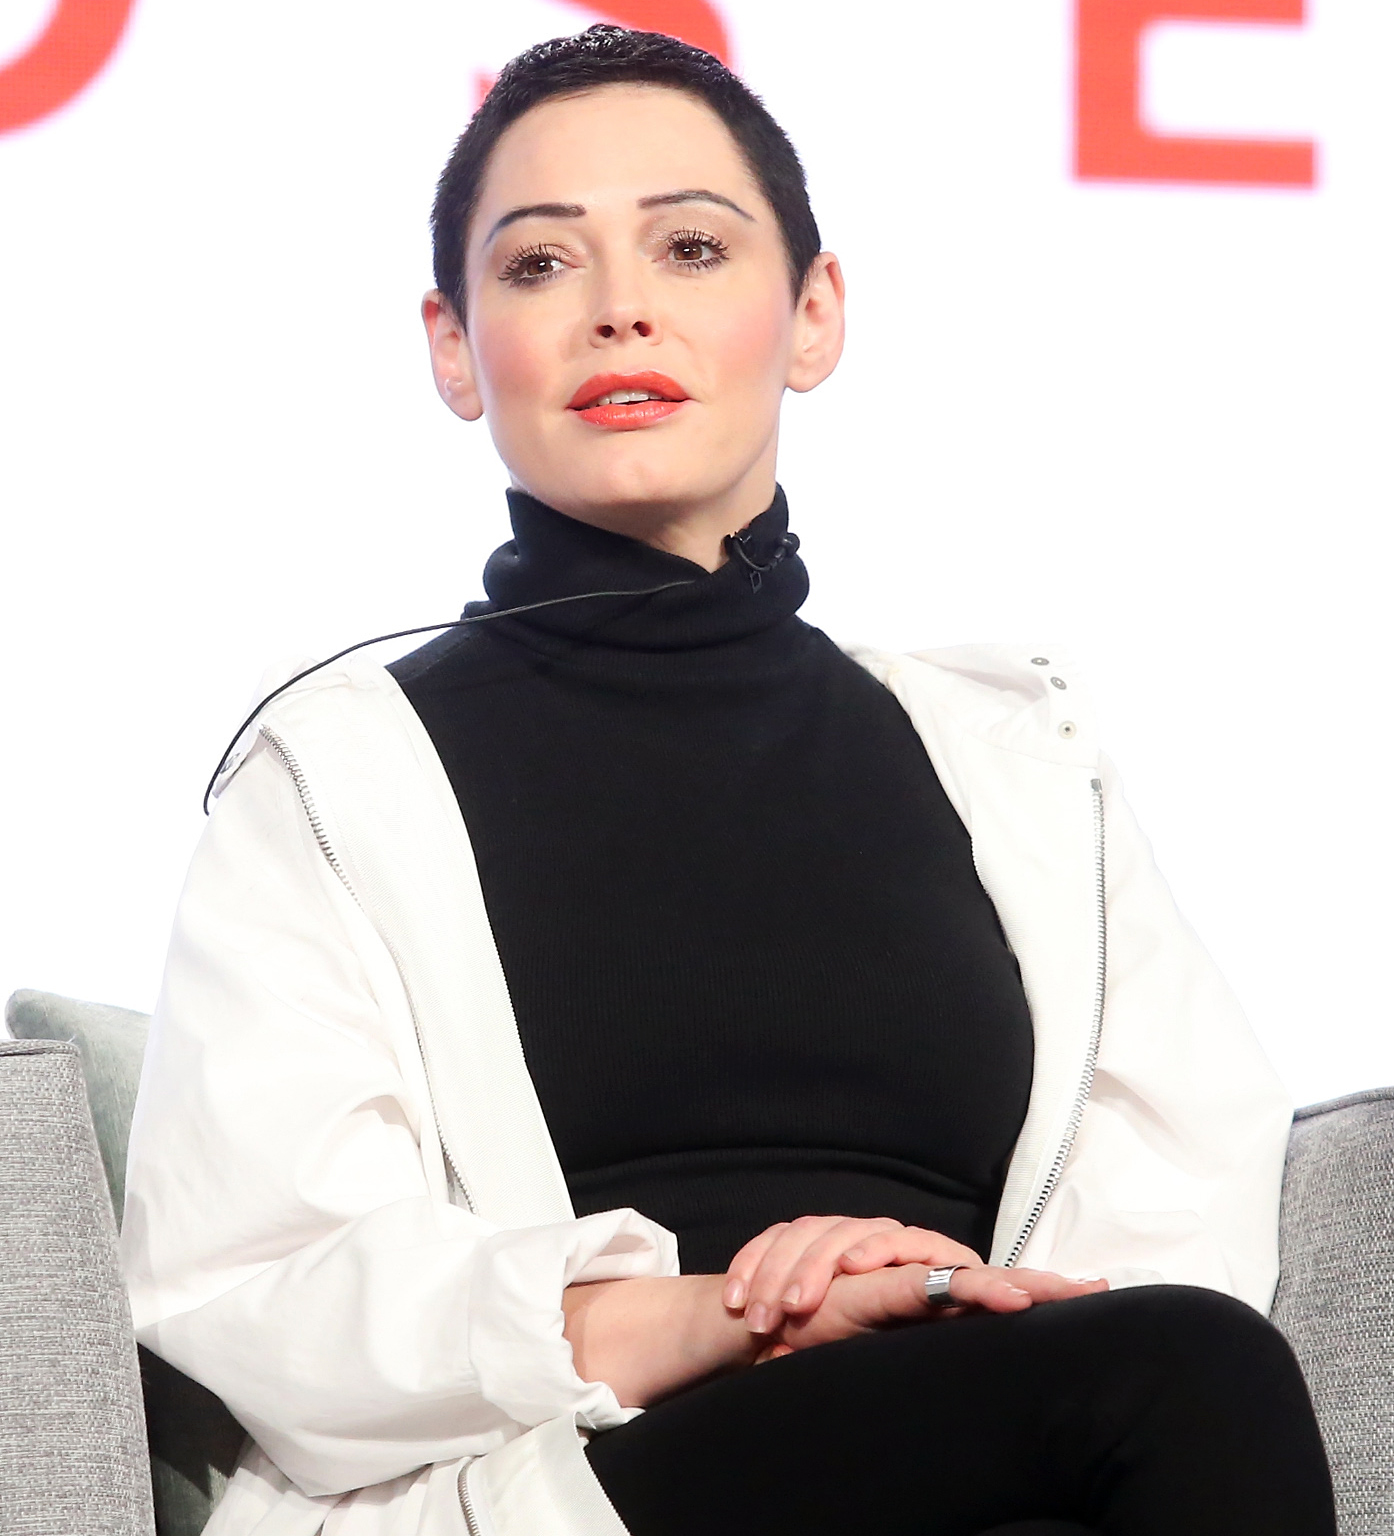 Rose McGowan speaks about Citizen Rose